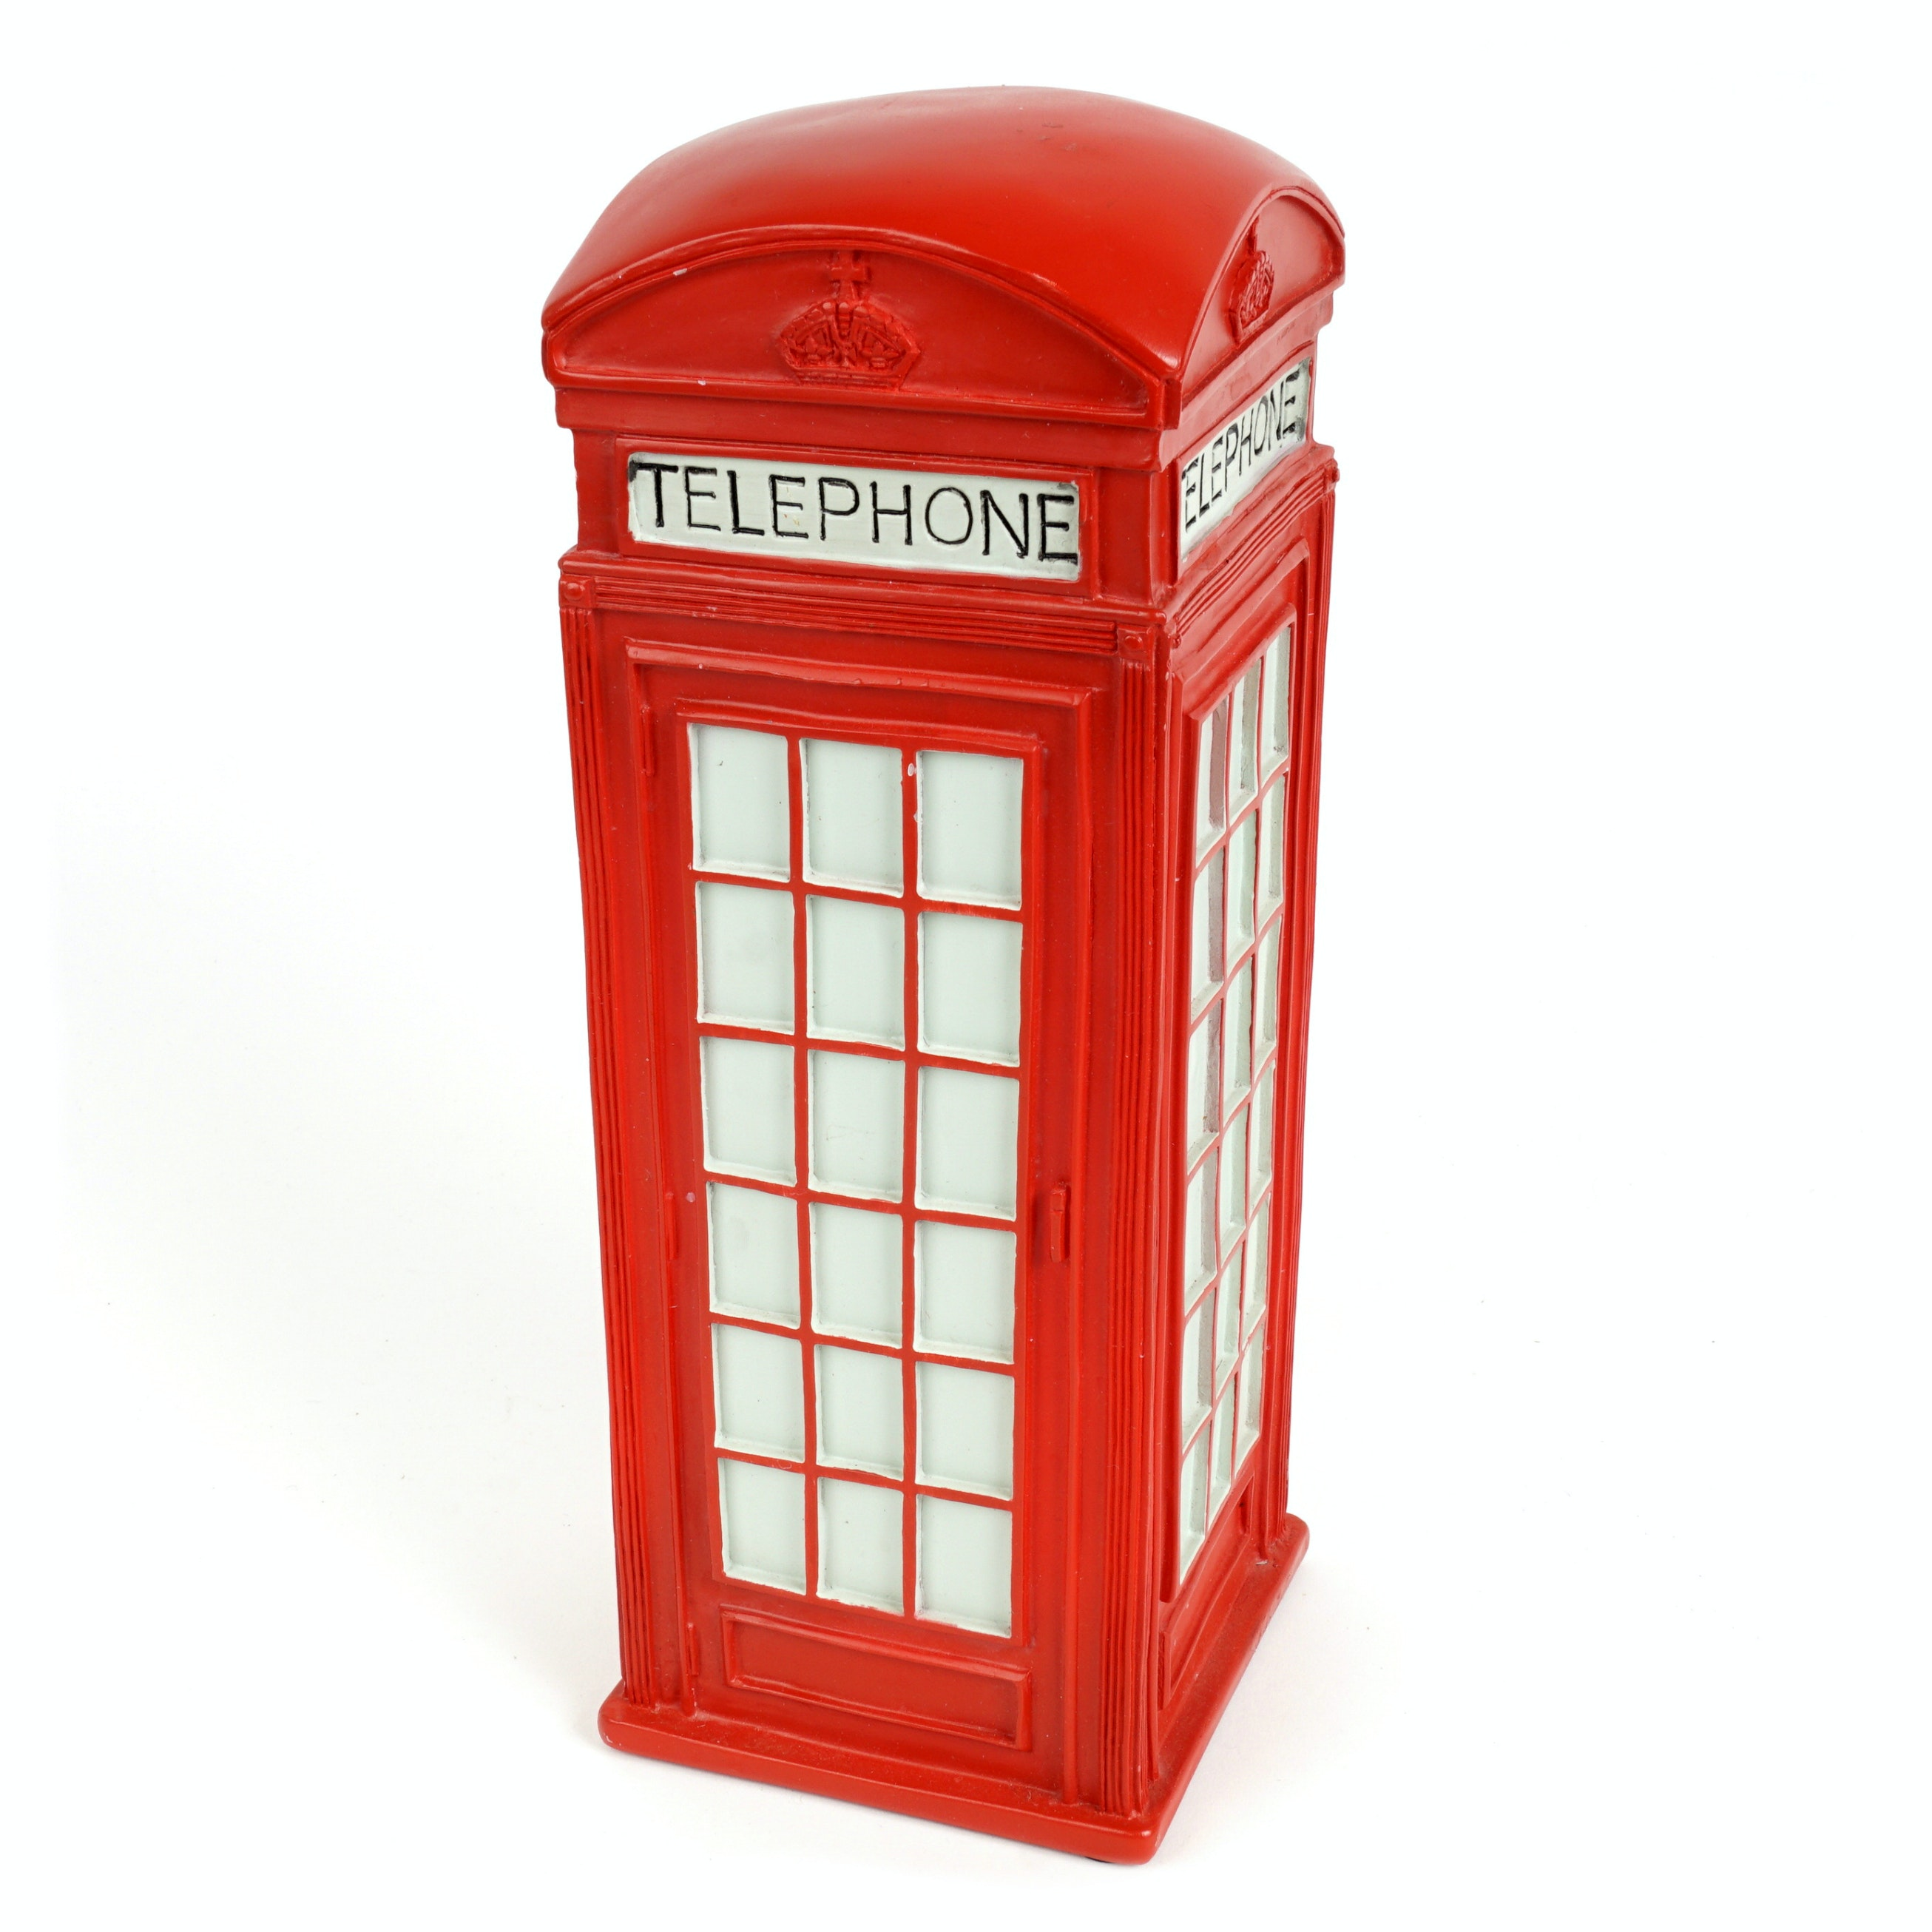 British Telephone Booth Figurine